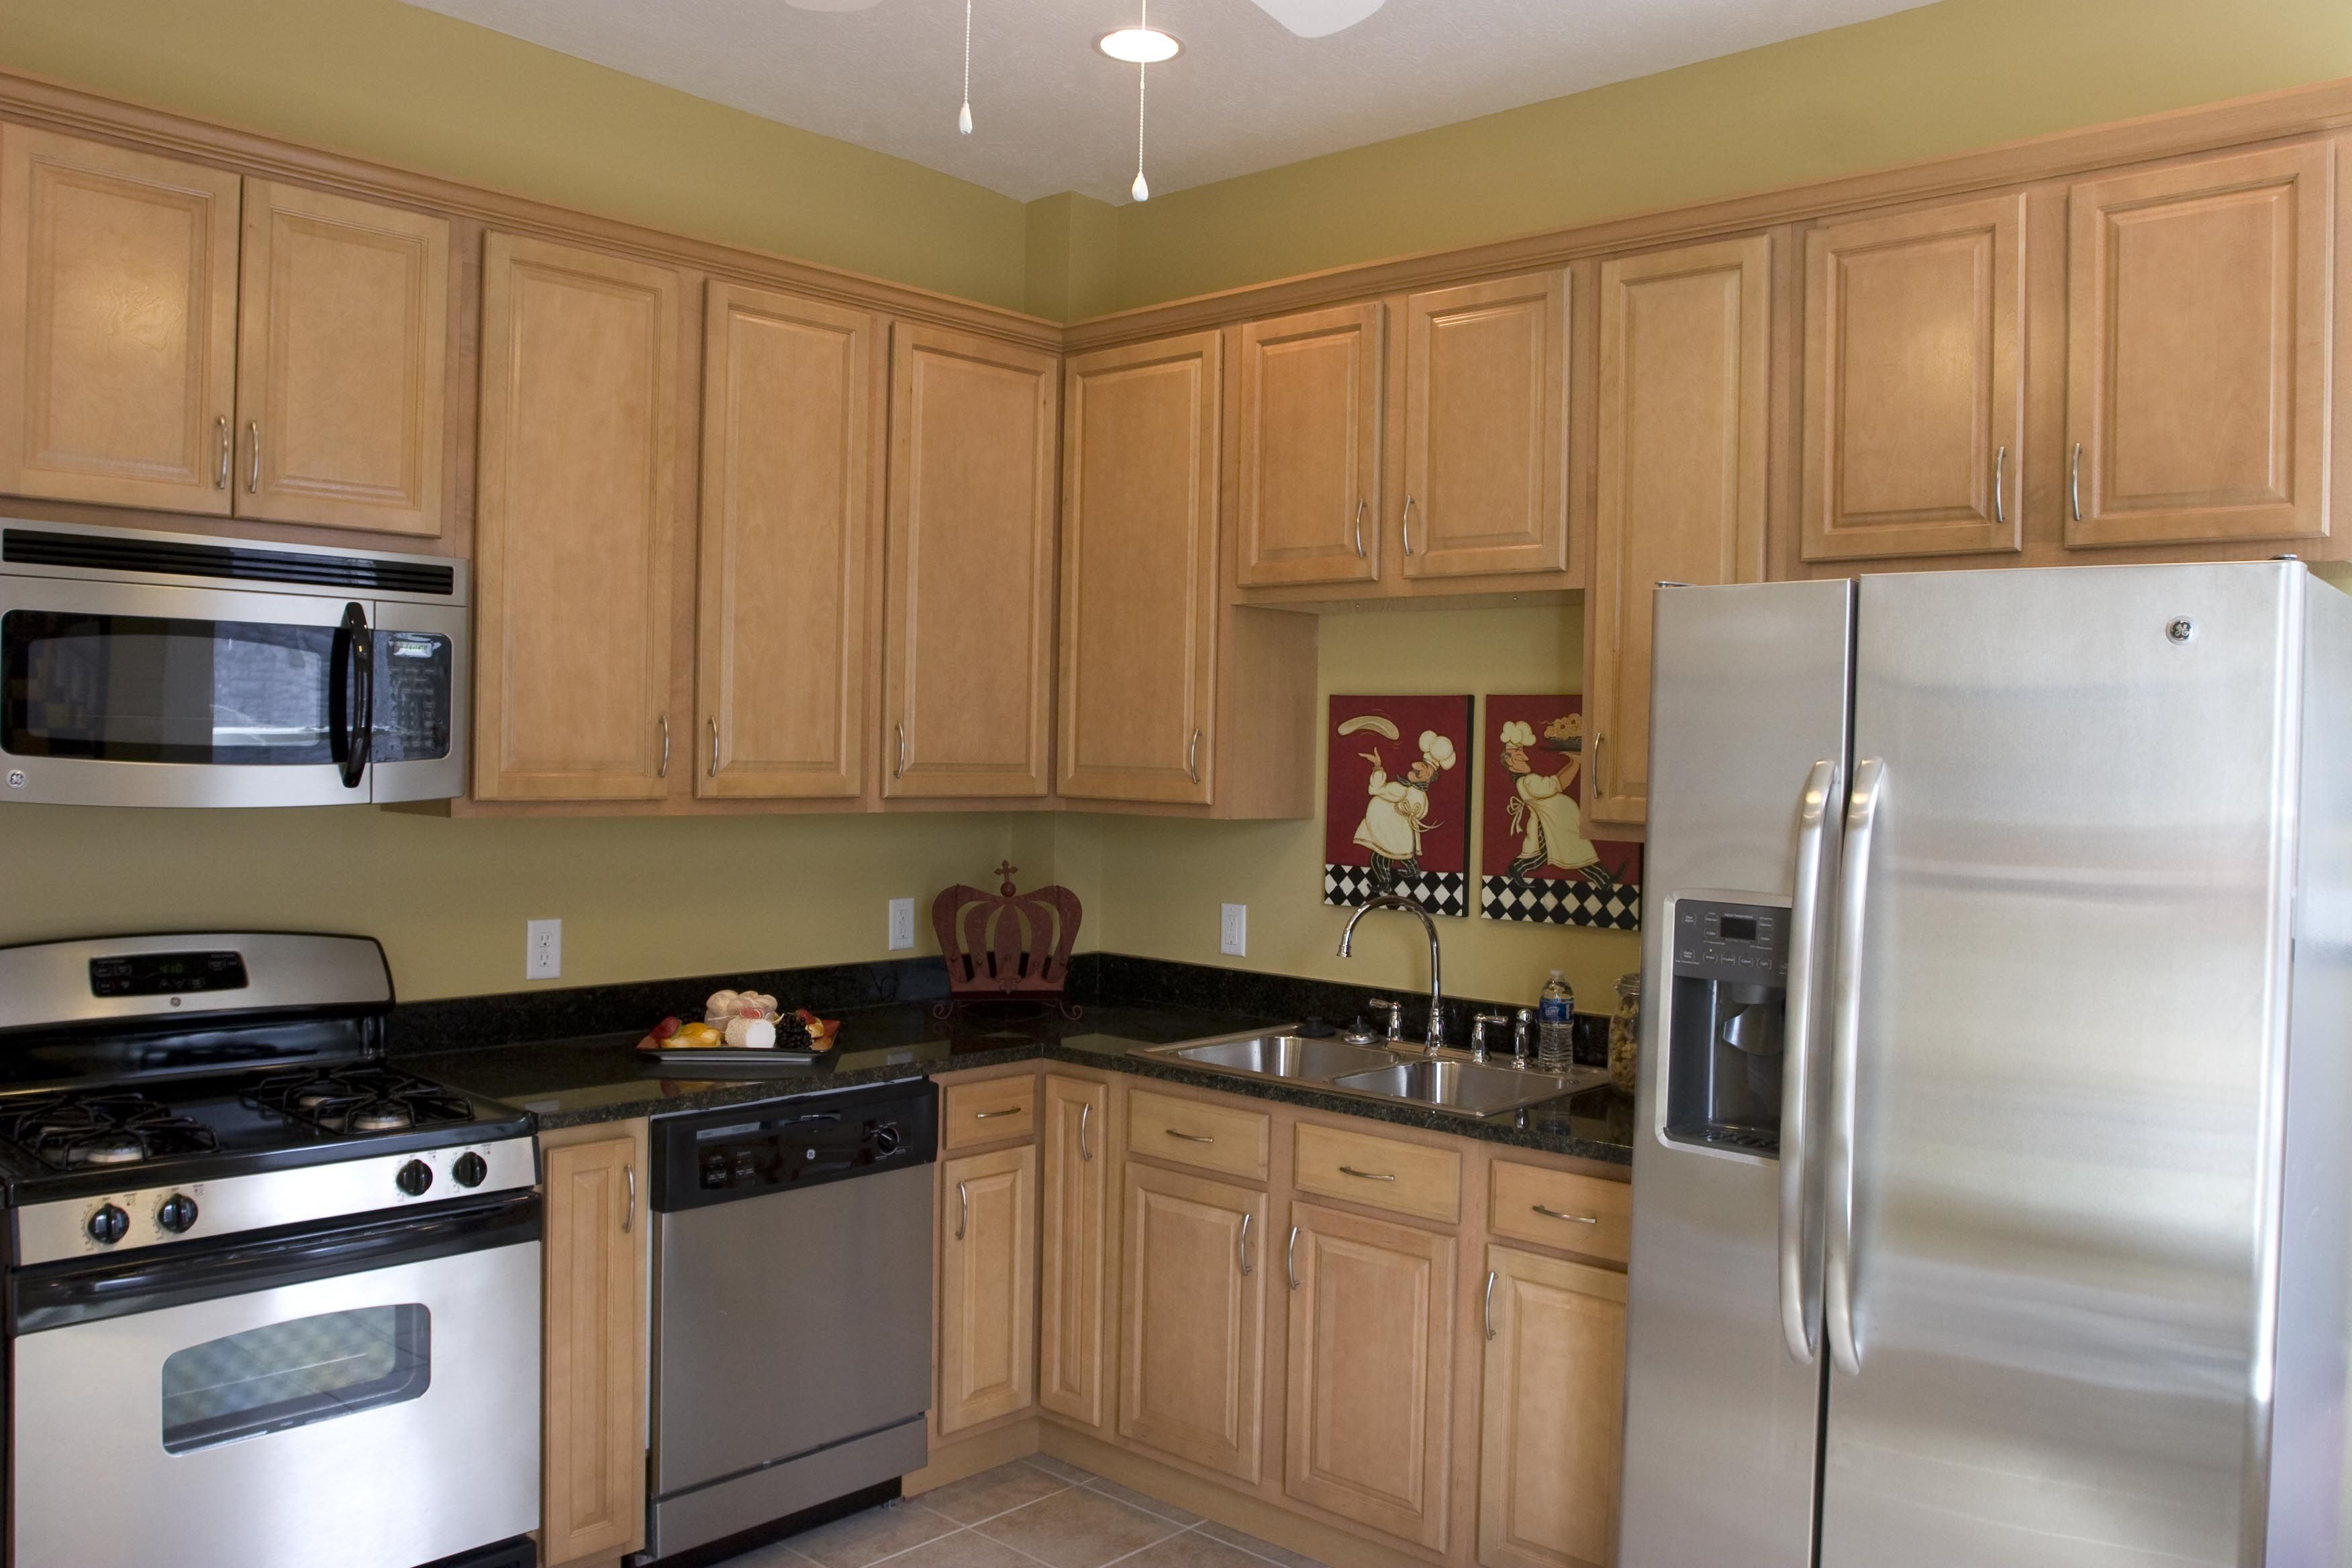 Birch Kitchen Cabinets All Wood Maple Or Birch Kitchen Cabinets With Granite Counterto Small House Kitchen Design House Design Kitchen Birch Kitchen Cabinets